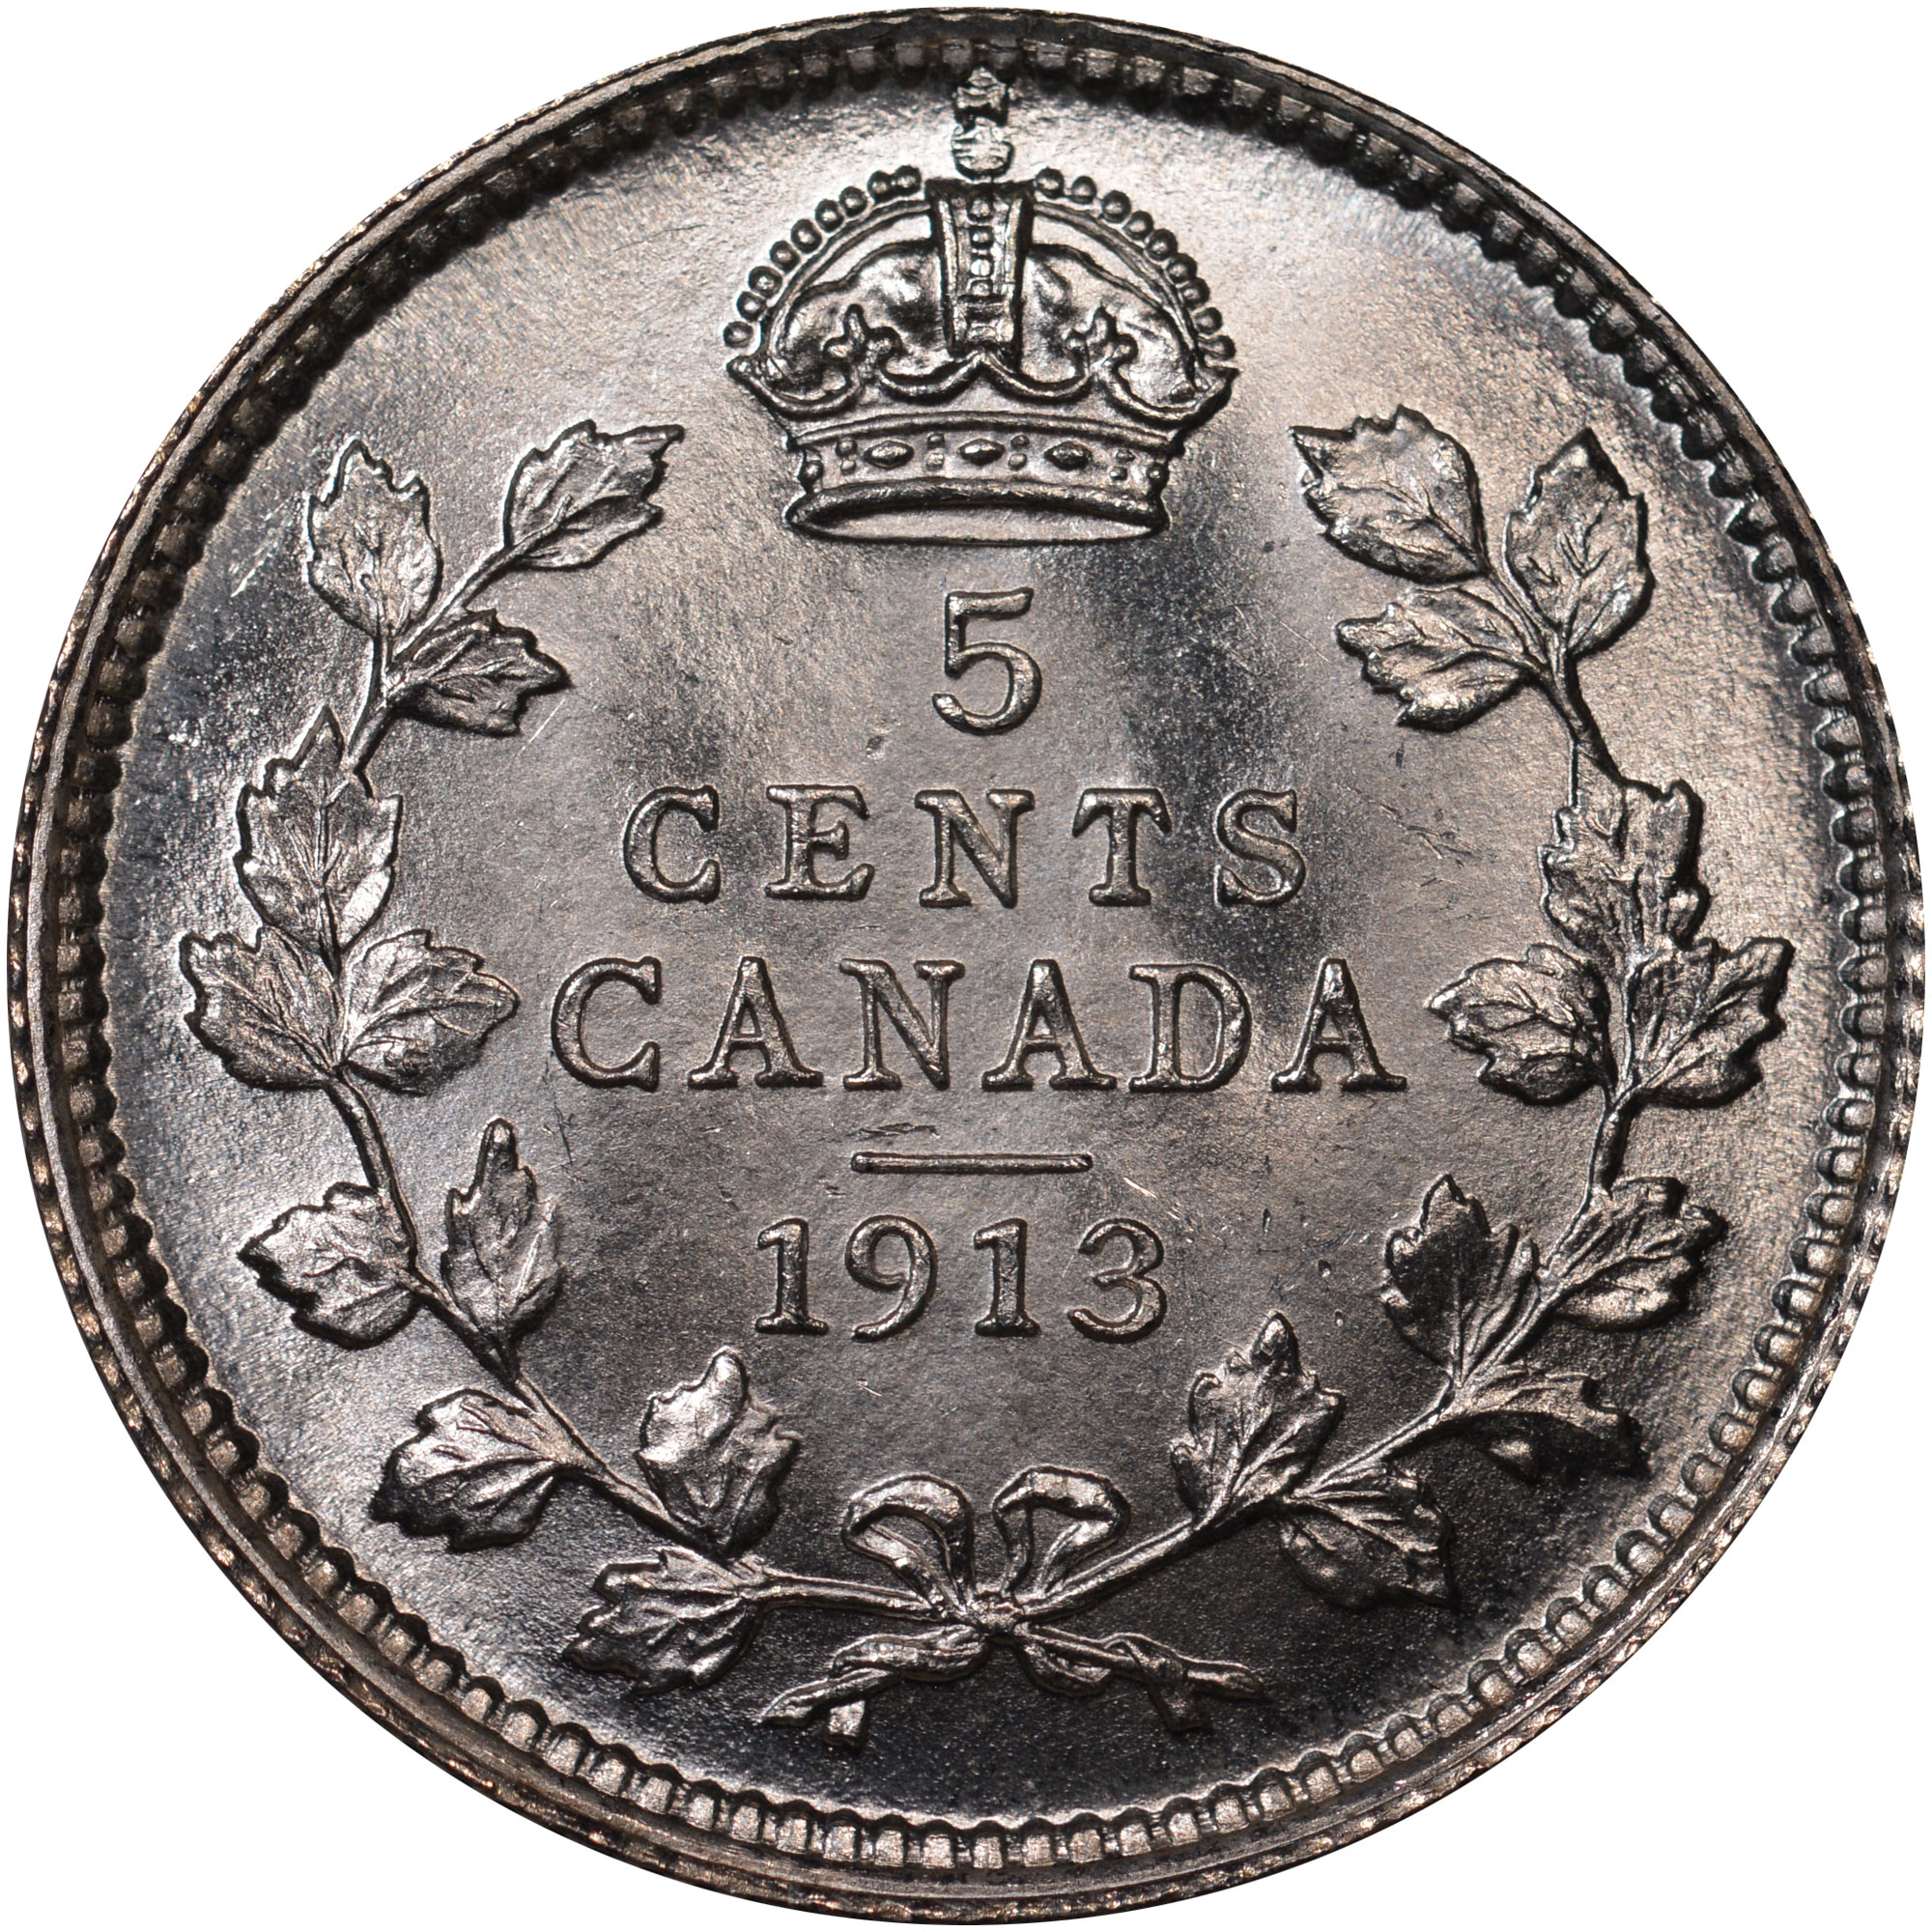 Canada 5 Cents Reverse